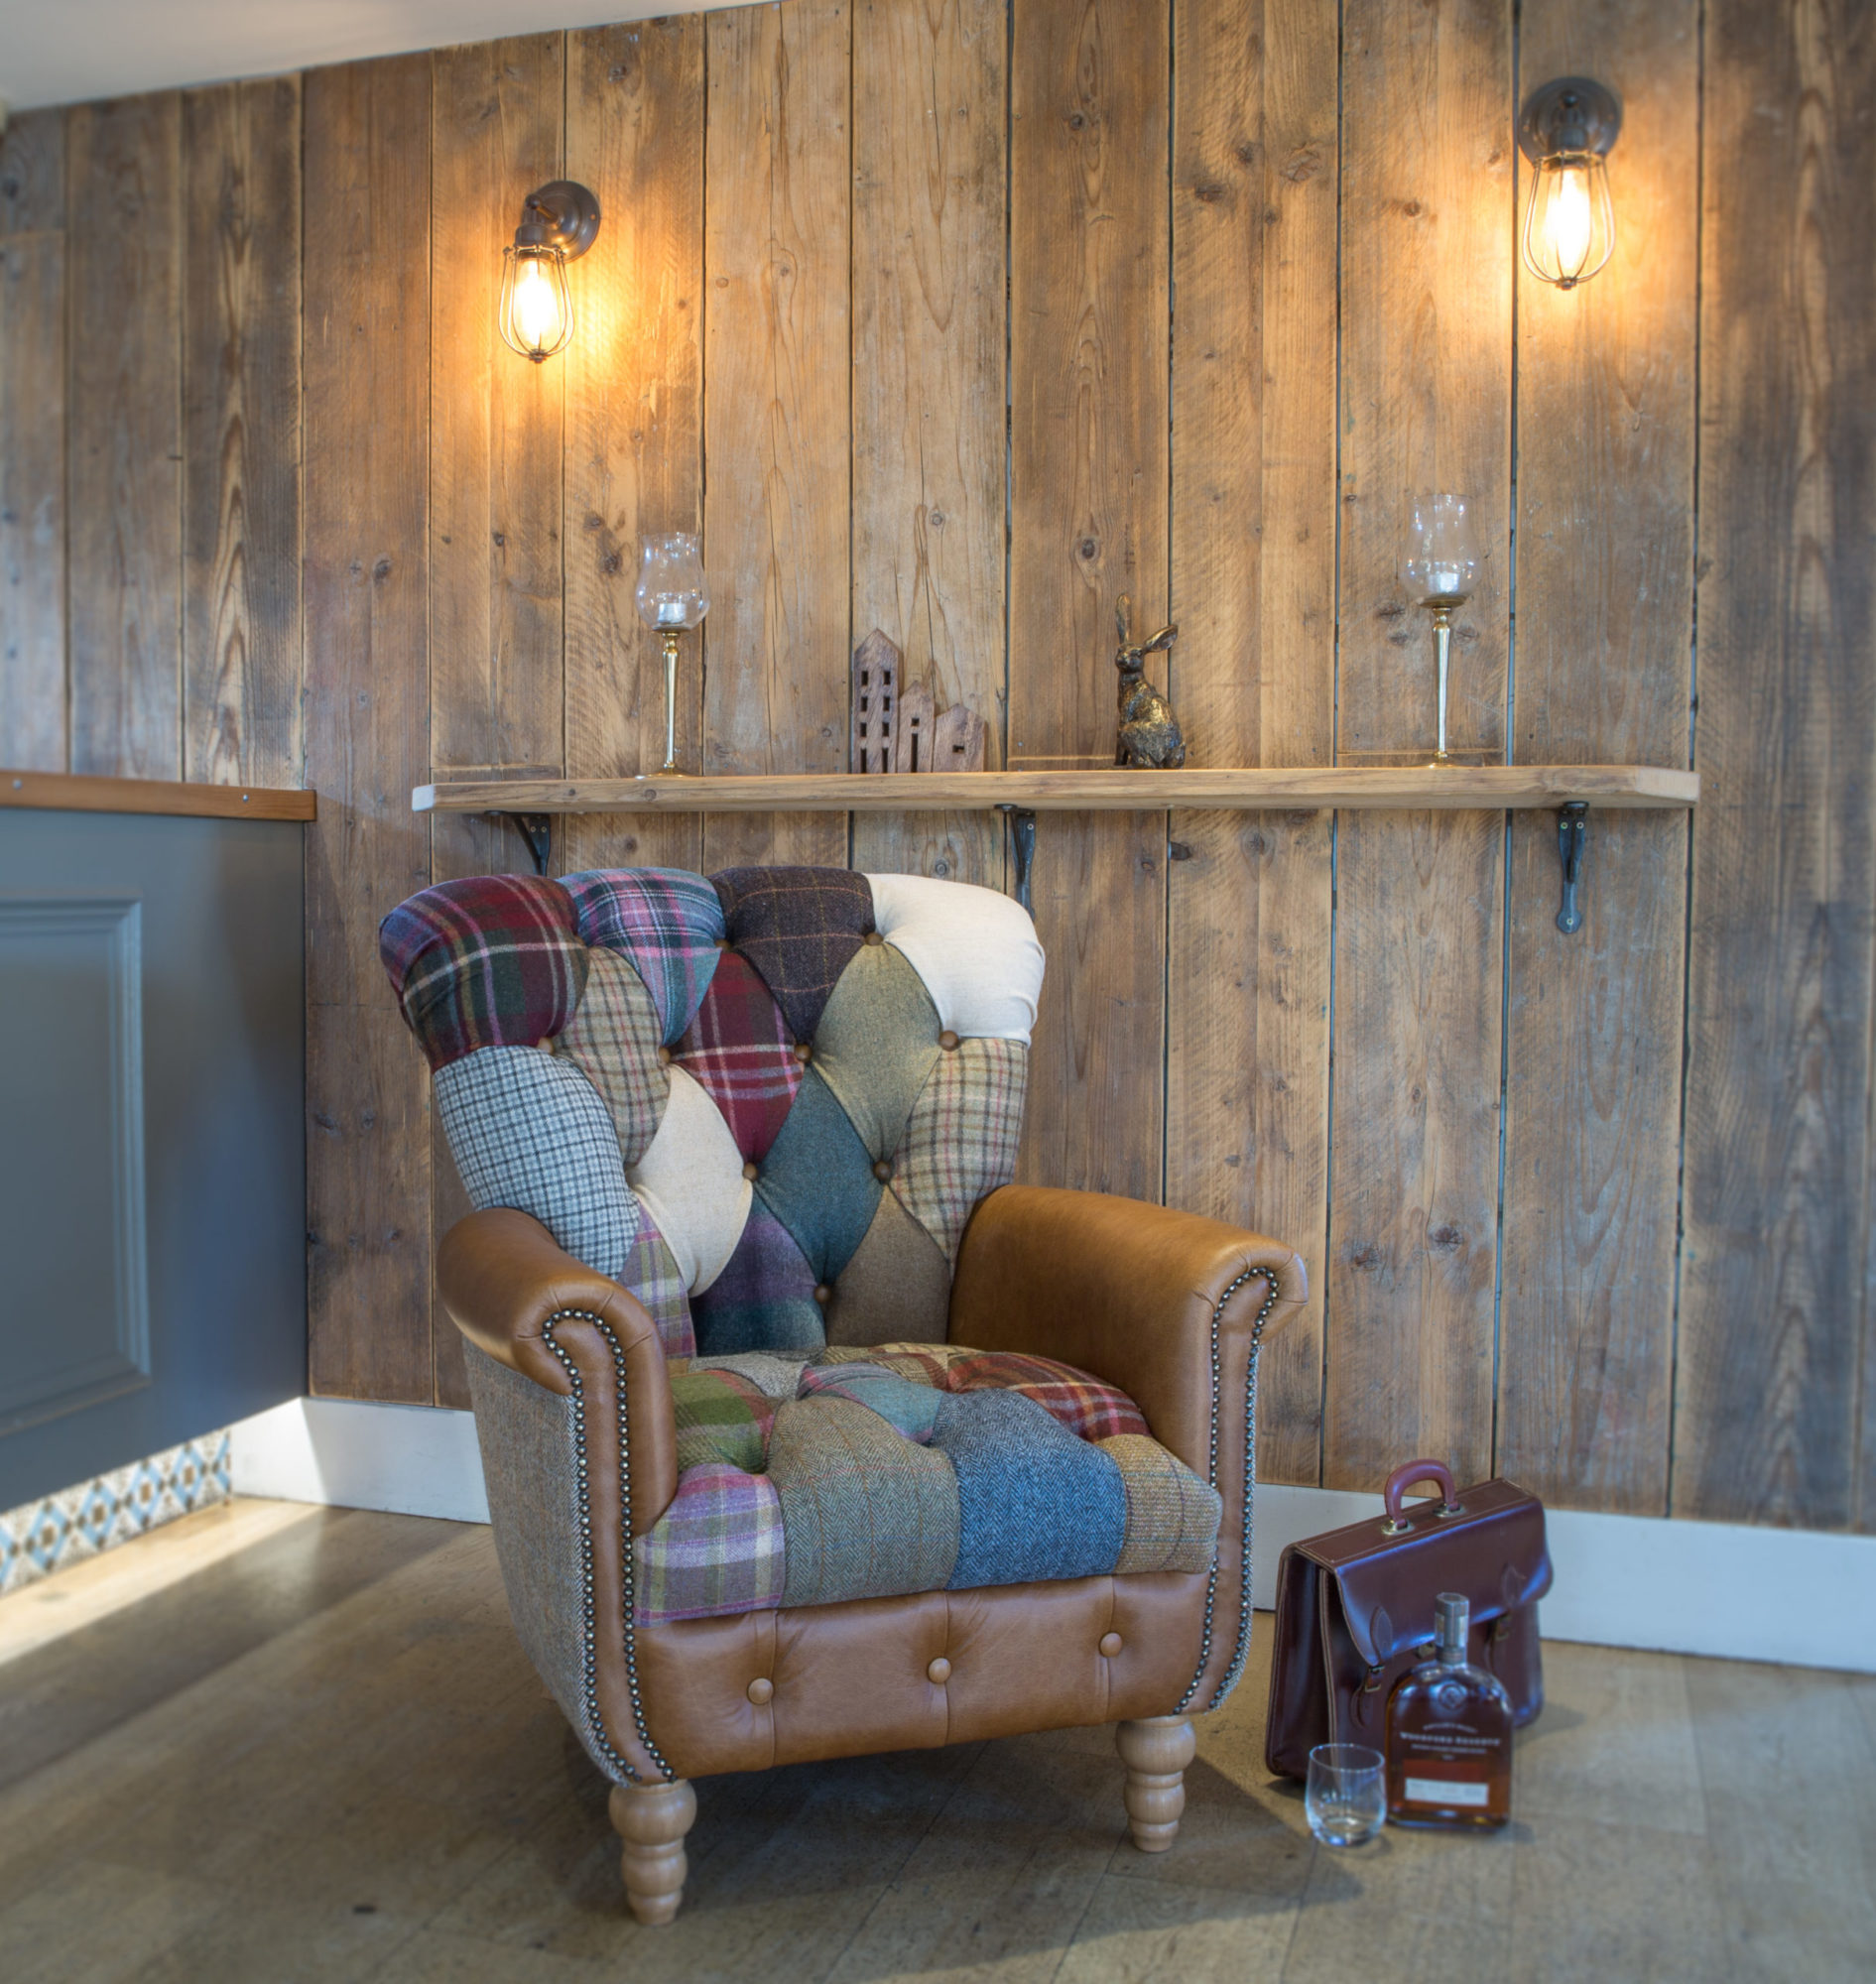 Vintage Sofa Co Gotham Harlequin Fast Track Chair in patchwork harris tweed and wool fabric with cerato brown leather arms and detailing on turned oak legs in a lifestyle setting